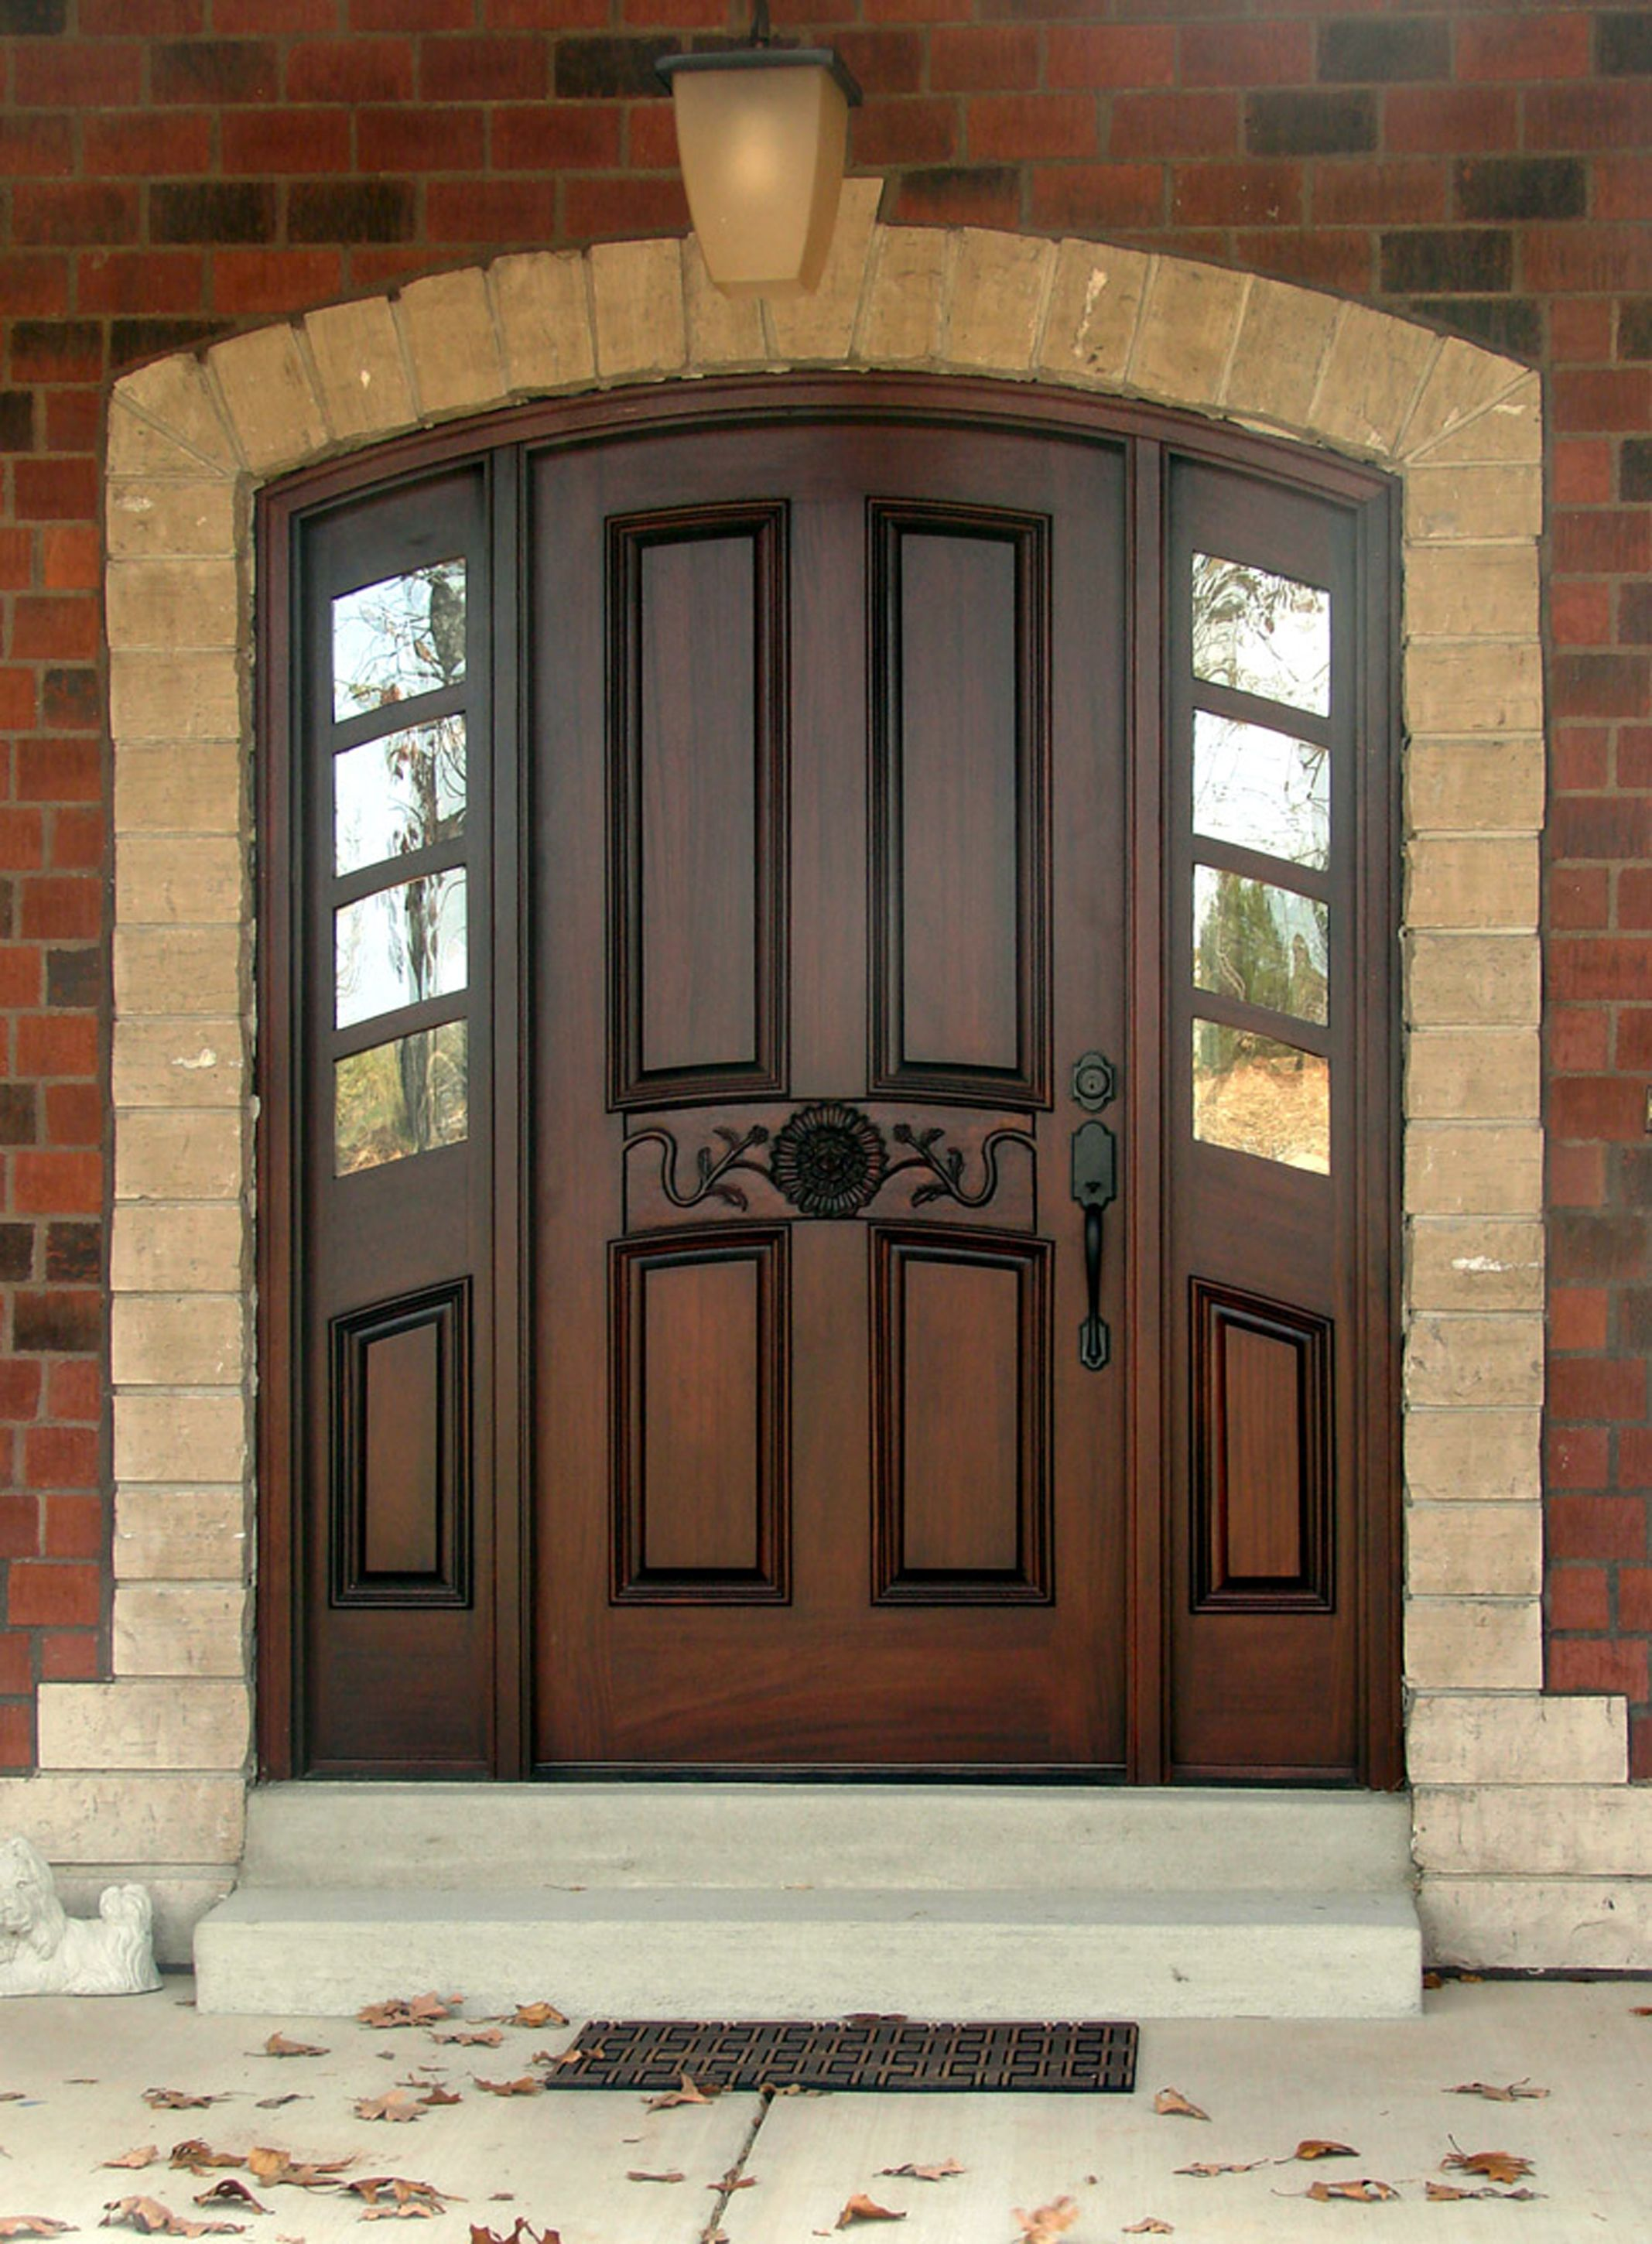 Best entrance door. How to choose a reliable and high-quality entrance door 27